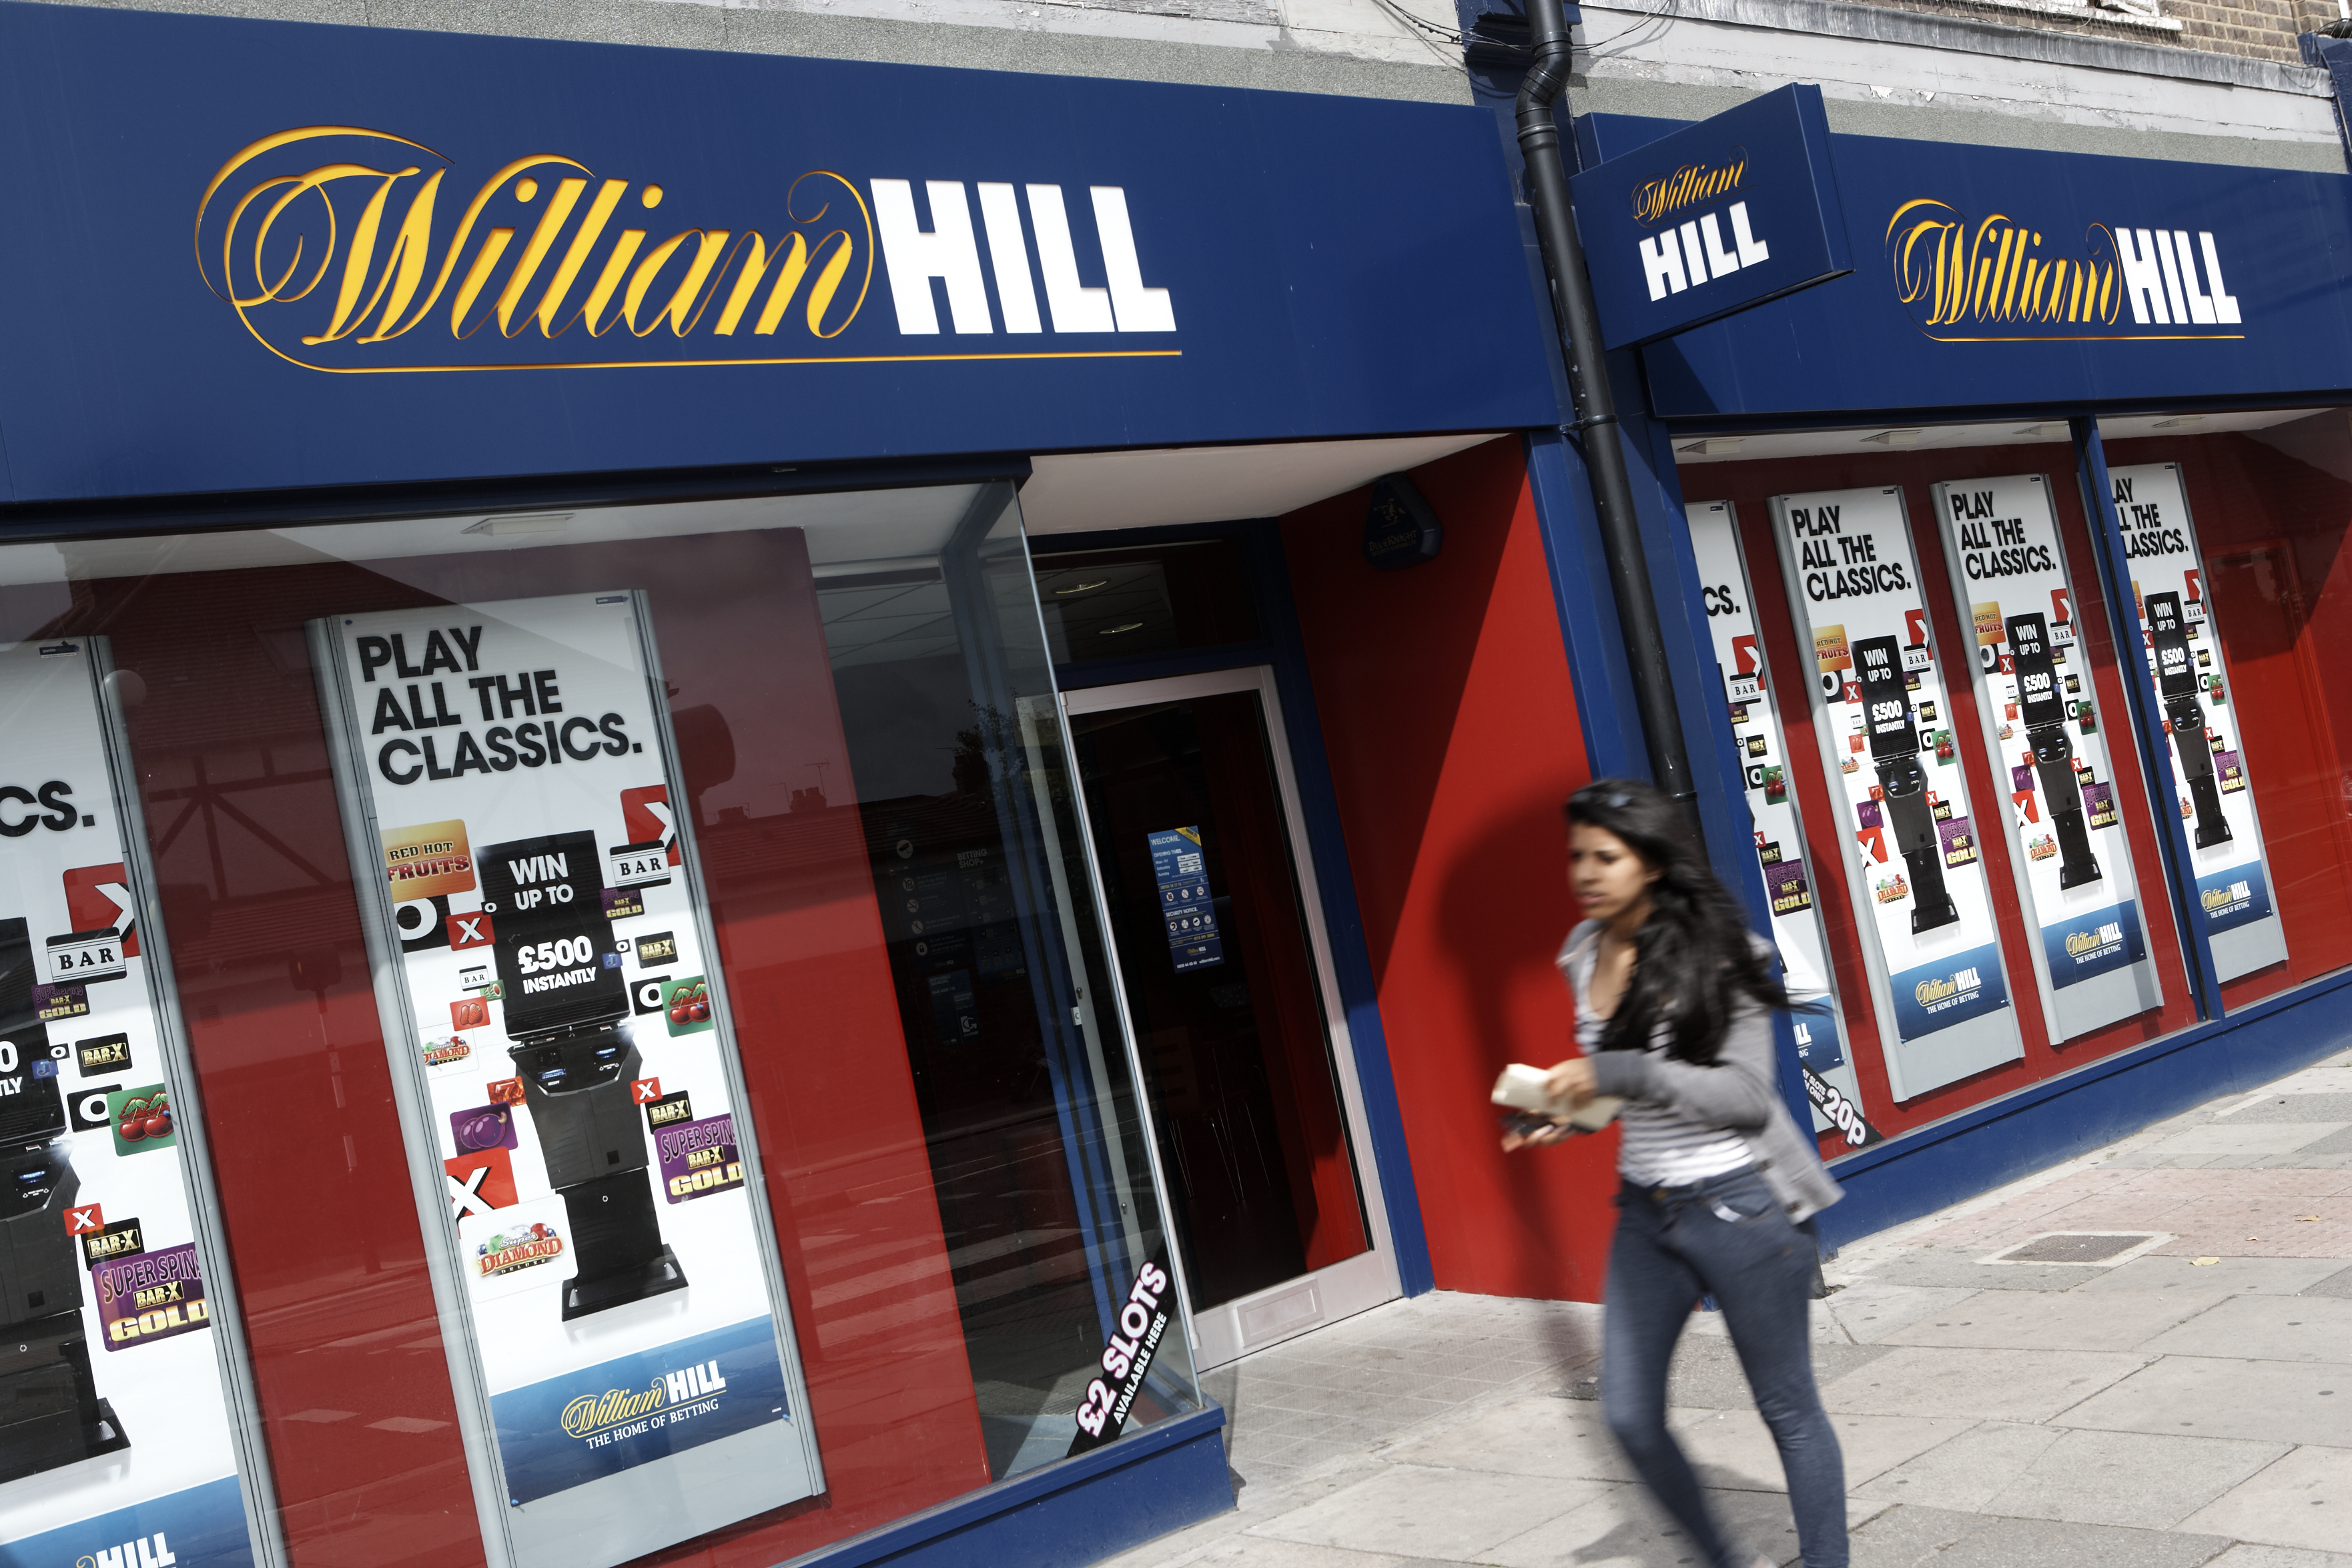 Williamhill At